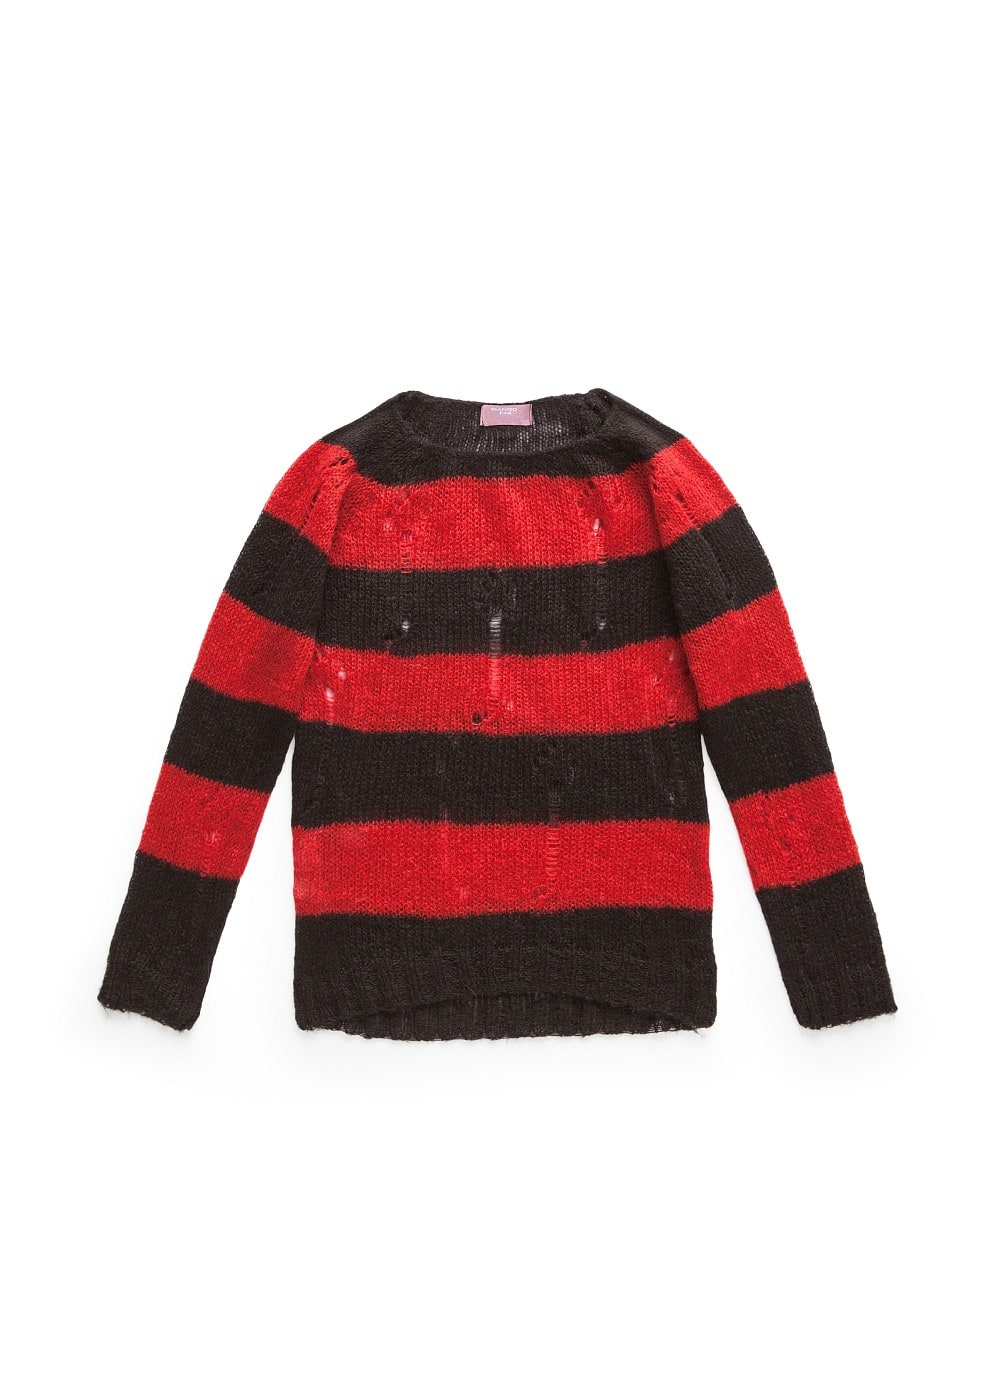 Openwork striped sweater | MANGO KIDS